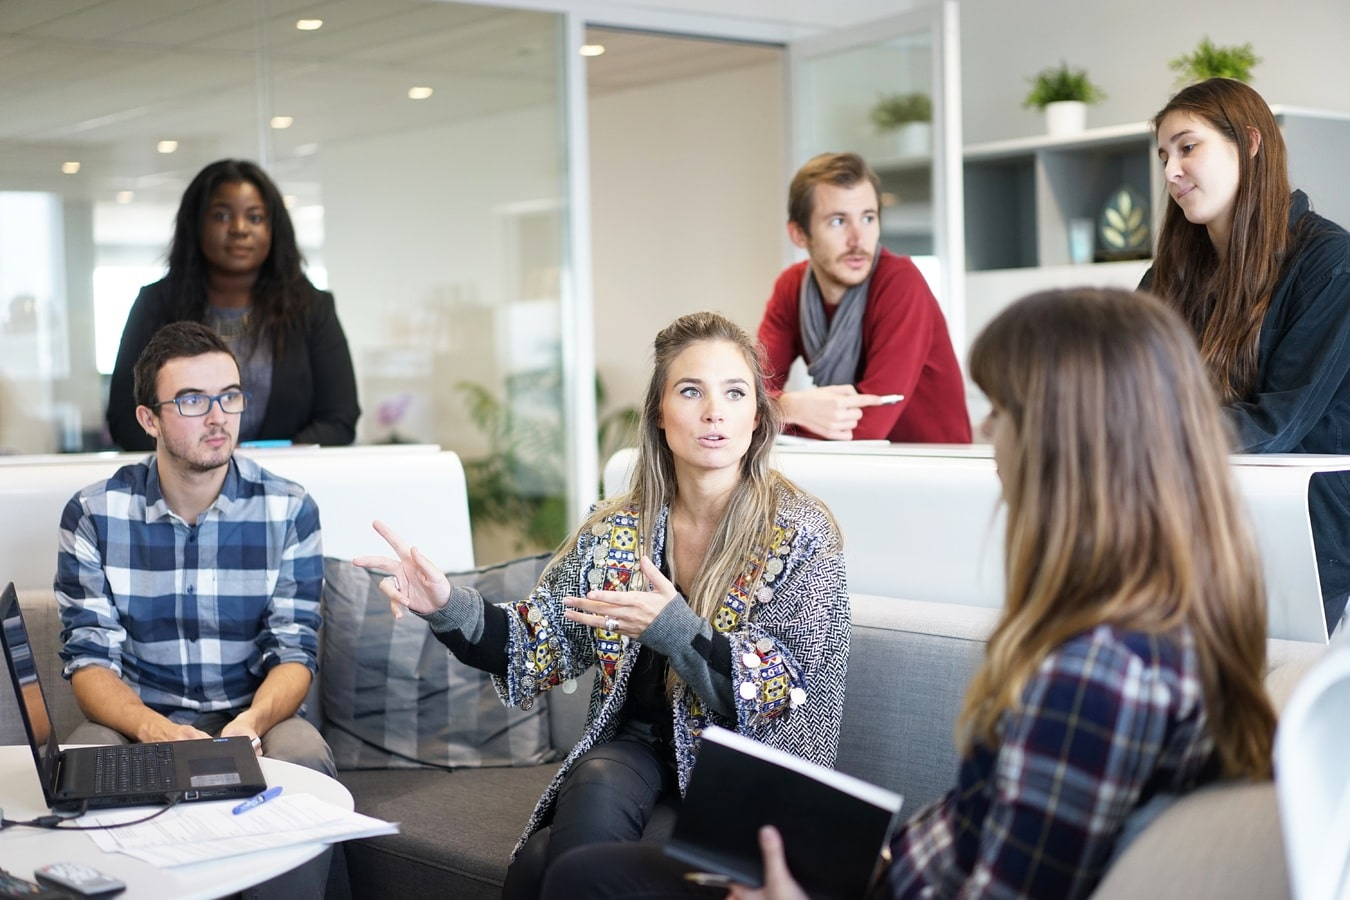 Is there a wrong way to motivate your team? Of course! Being a leader doesn't mean yelling until someone listens. Here's how NOT to motivate your team.